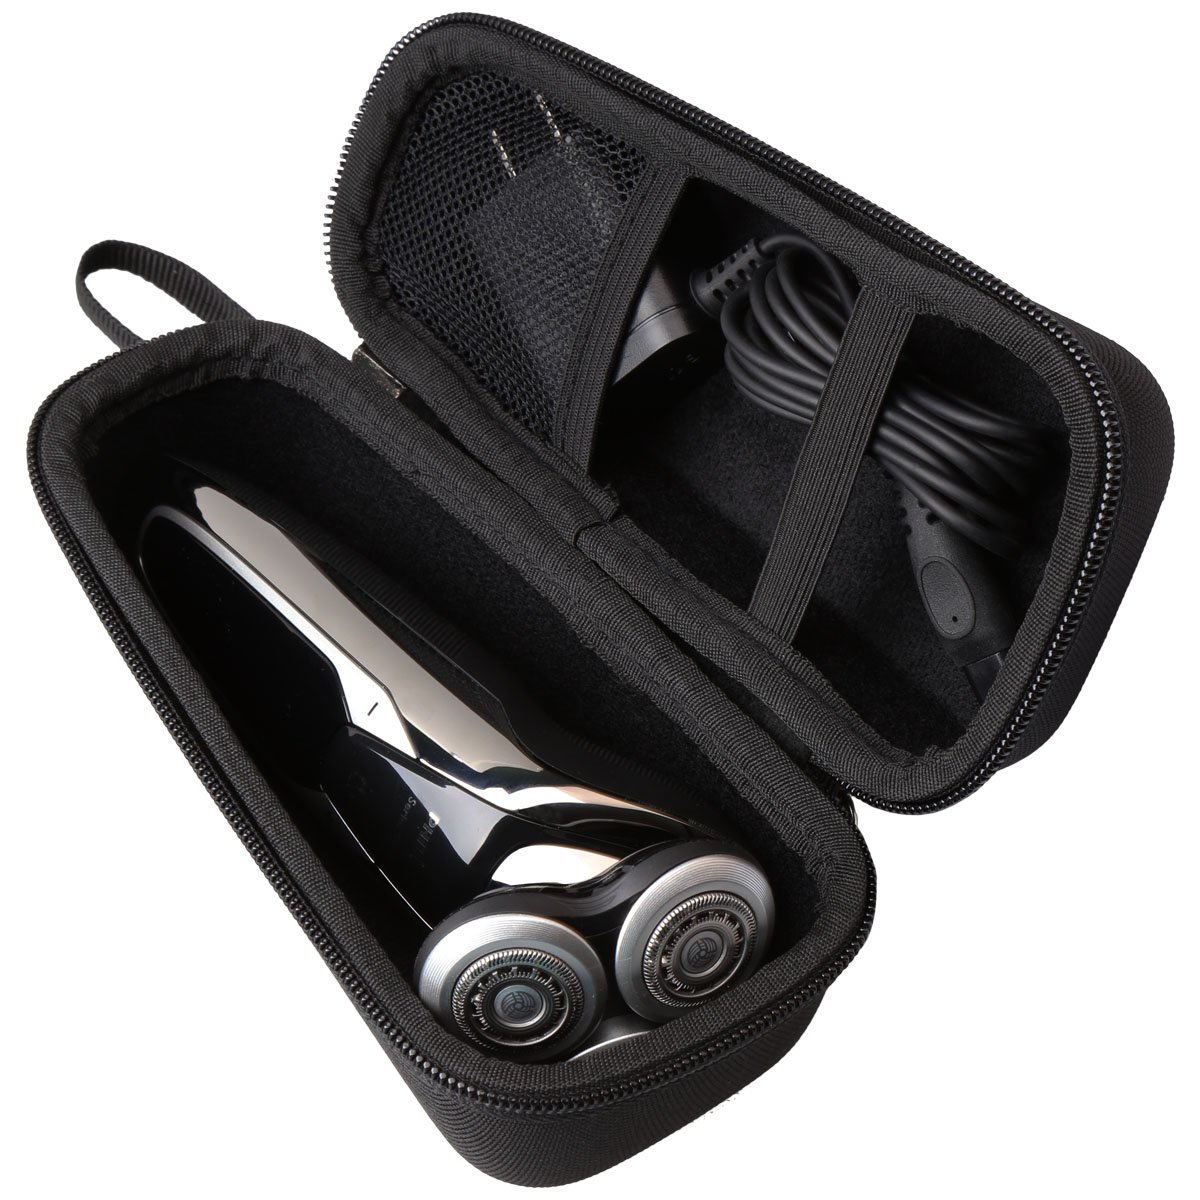 Hard Travel carrying Case for Philips Norelco Electric Shaver 9700 5570 5750 5550 S9721/89 S9721/84 S5572/90 S5660/84 S5590/81 by Aproca (black-small)